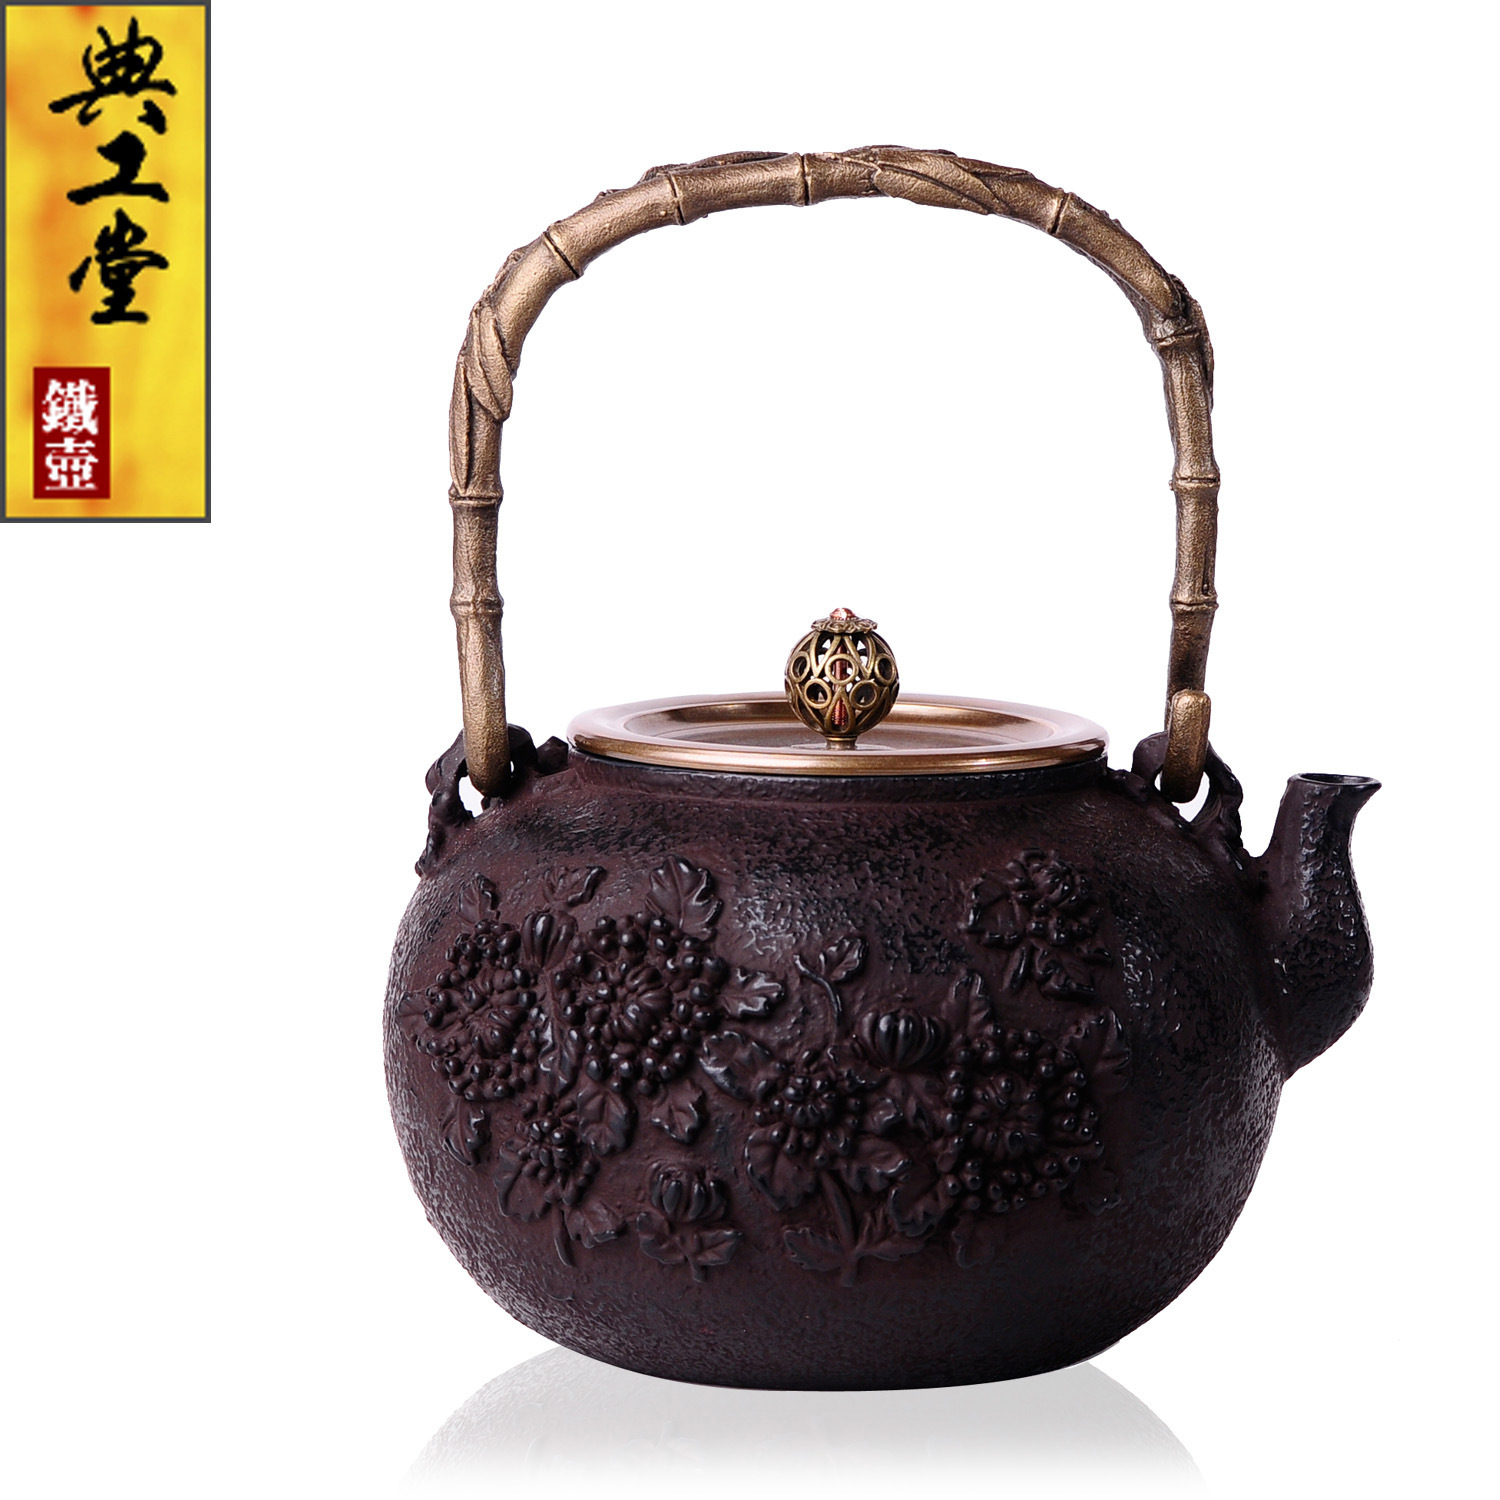 High quality japanese style cast iron teapot infuser pot tea set tetsubin kettle metal strainer - Japanese teapot with strainer ...